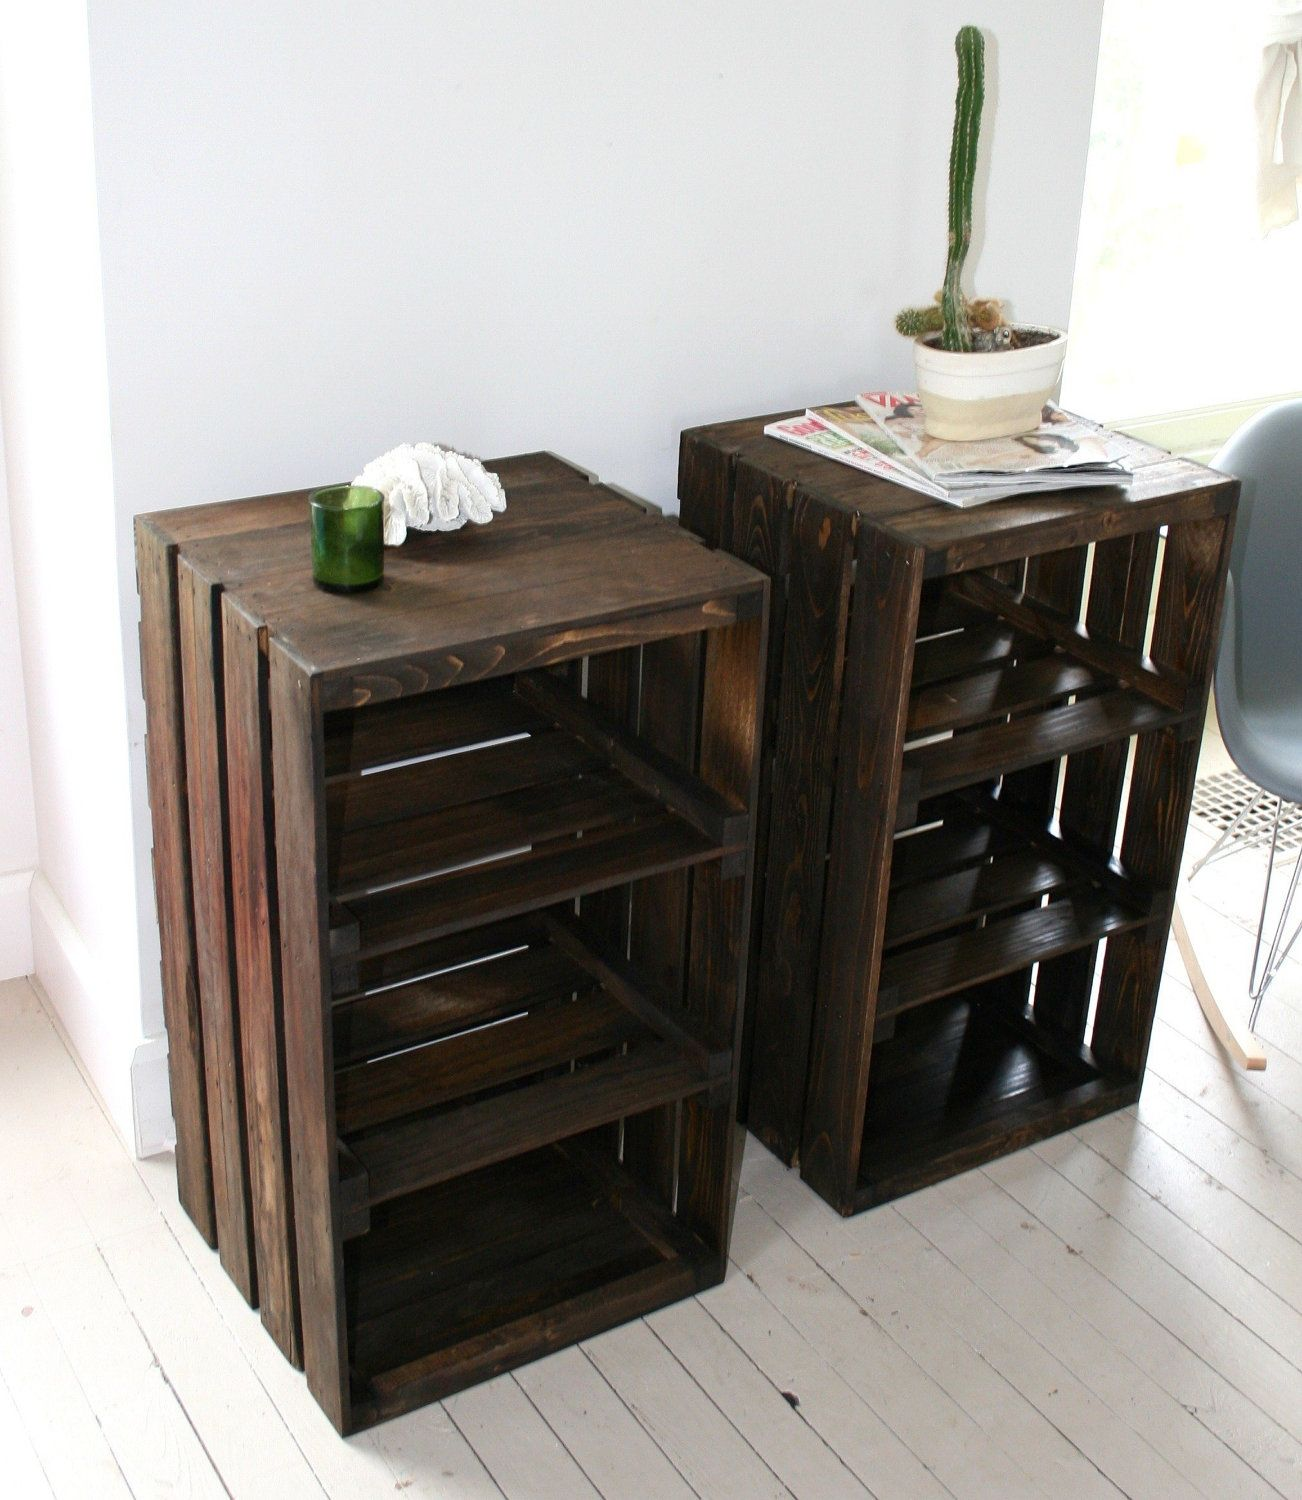 Wood Crate Handmade Table great idea so my husband can hide all his